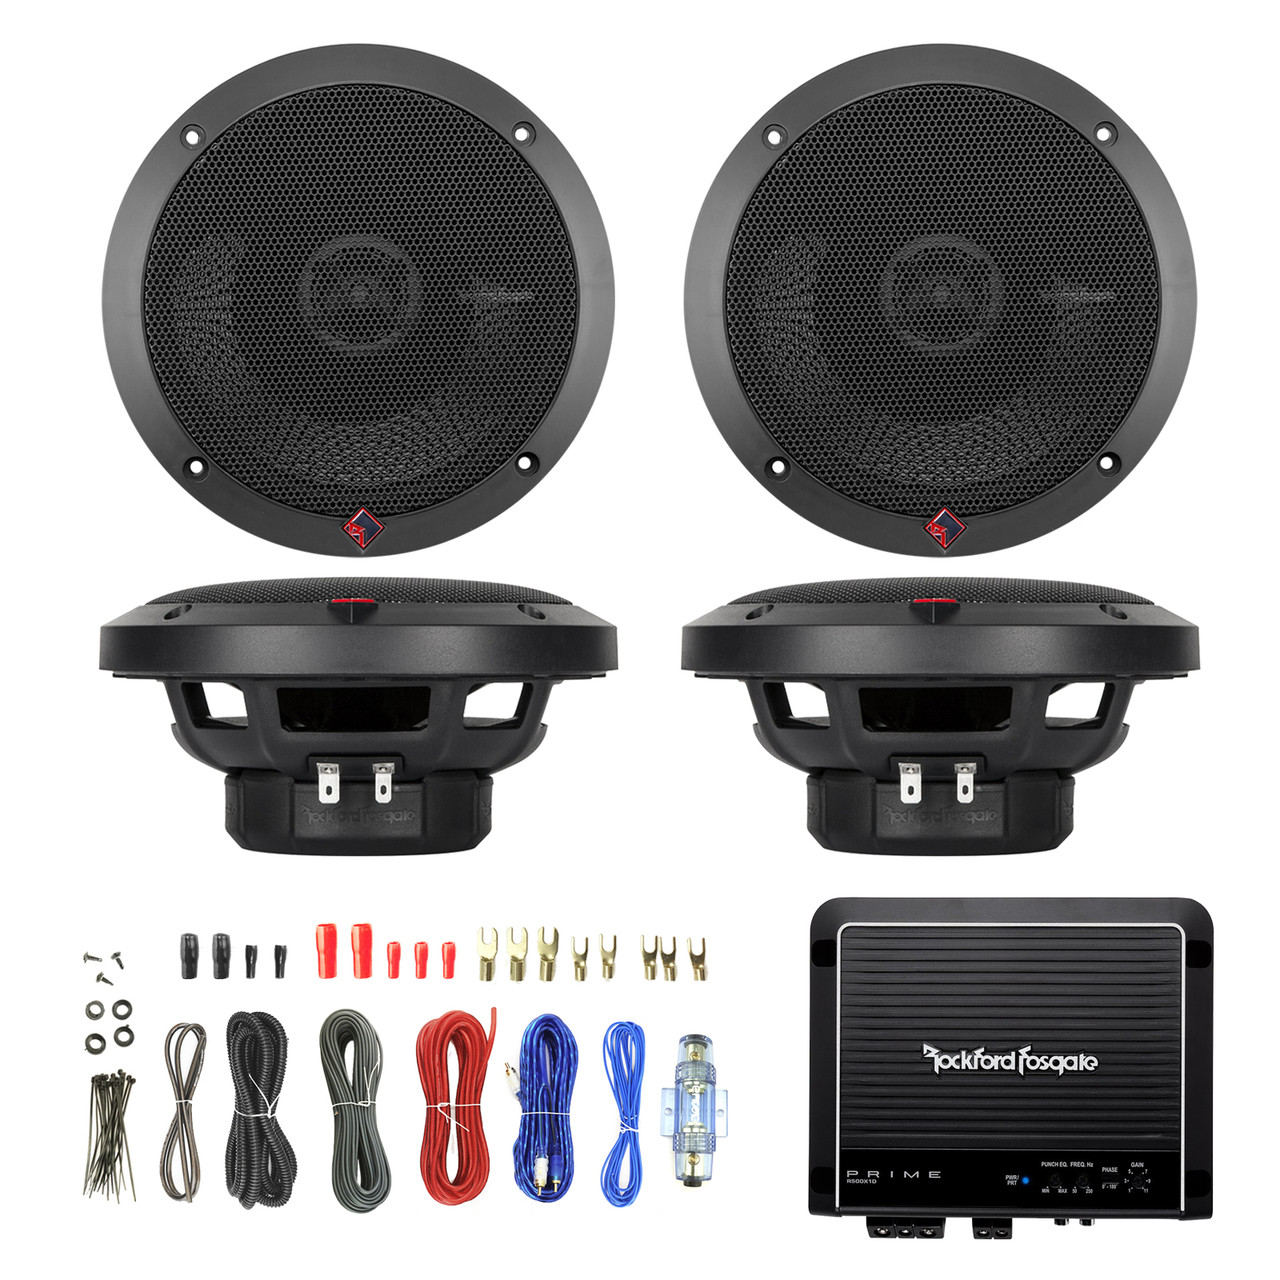 2x Rockford P1650 6 5-Inch 110 Watt 2-Way Full Range Speaker, Rockford  Fosgate Prime R500X1D 500W RMS Prime Series Class D Amplifier, Enrock Audio  8